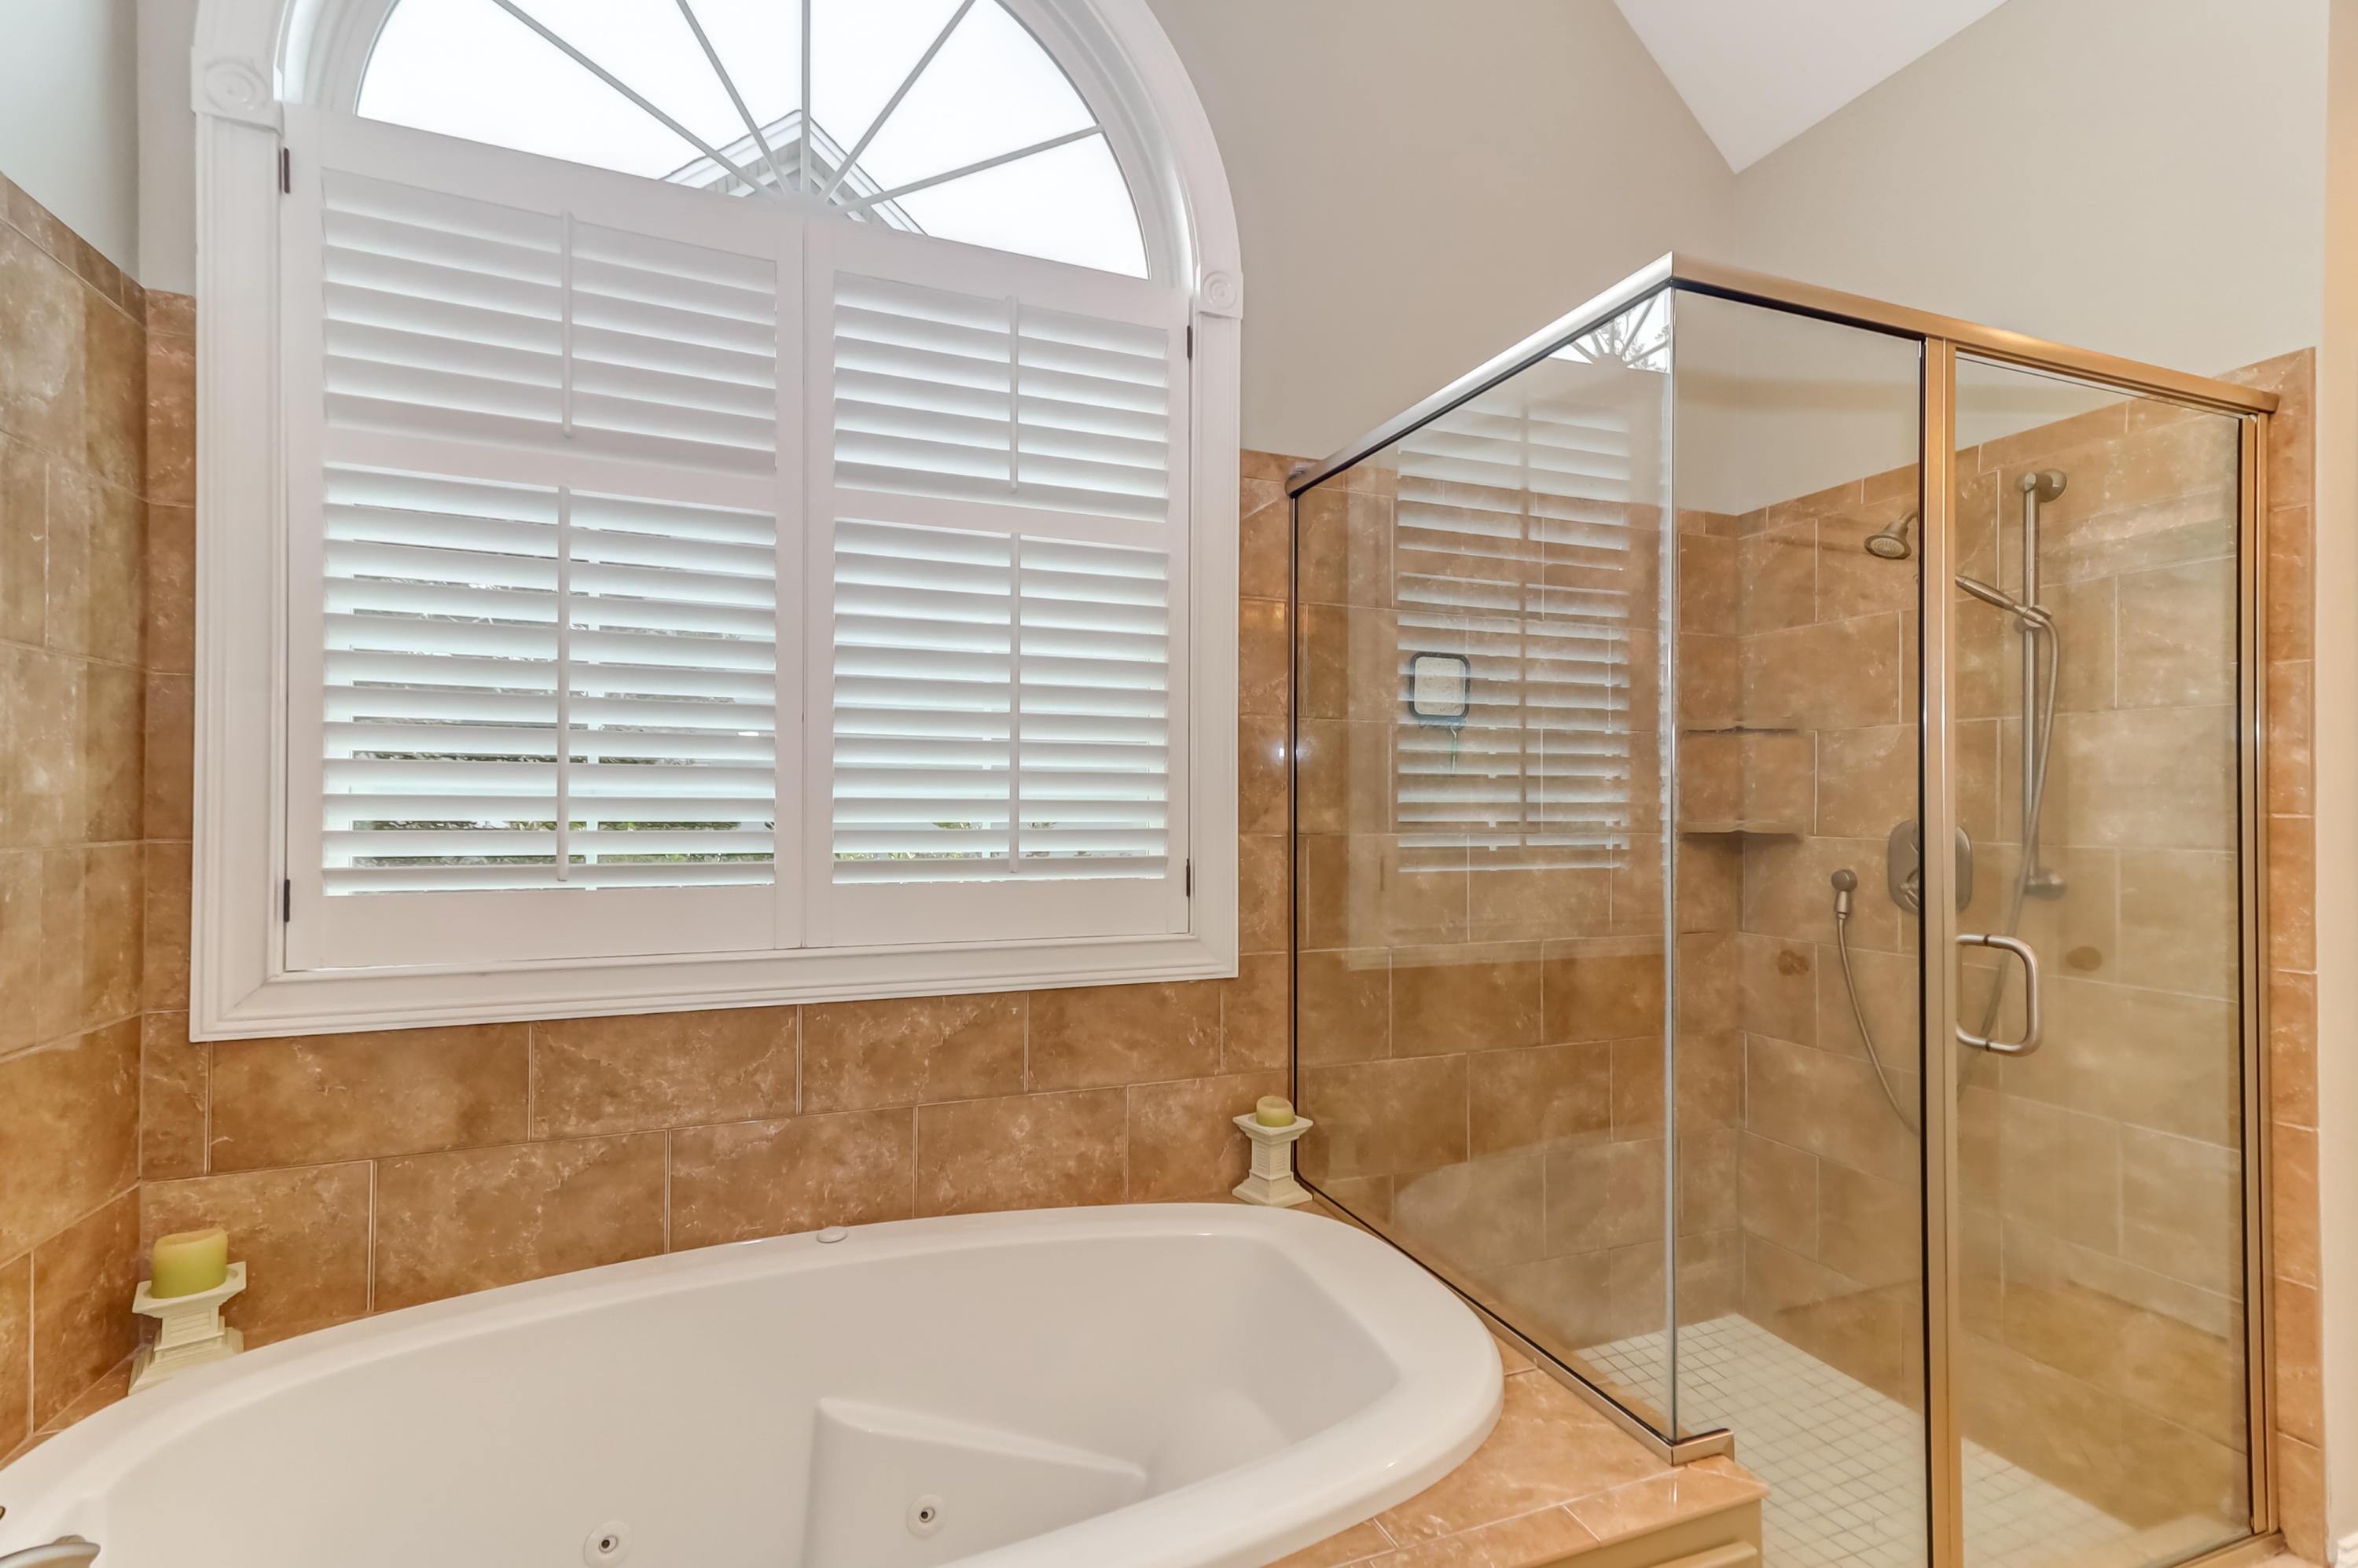 Woodward Pointe Homes For Sale - 657 White Chapel, Charleston, SC - 17